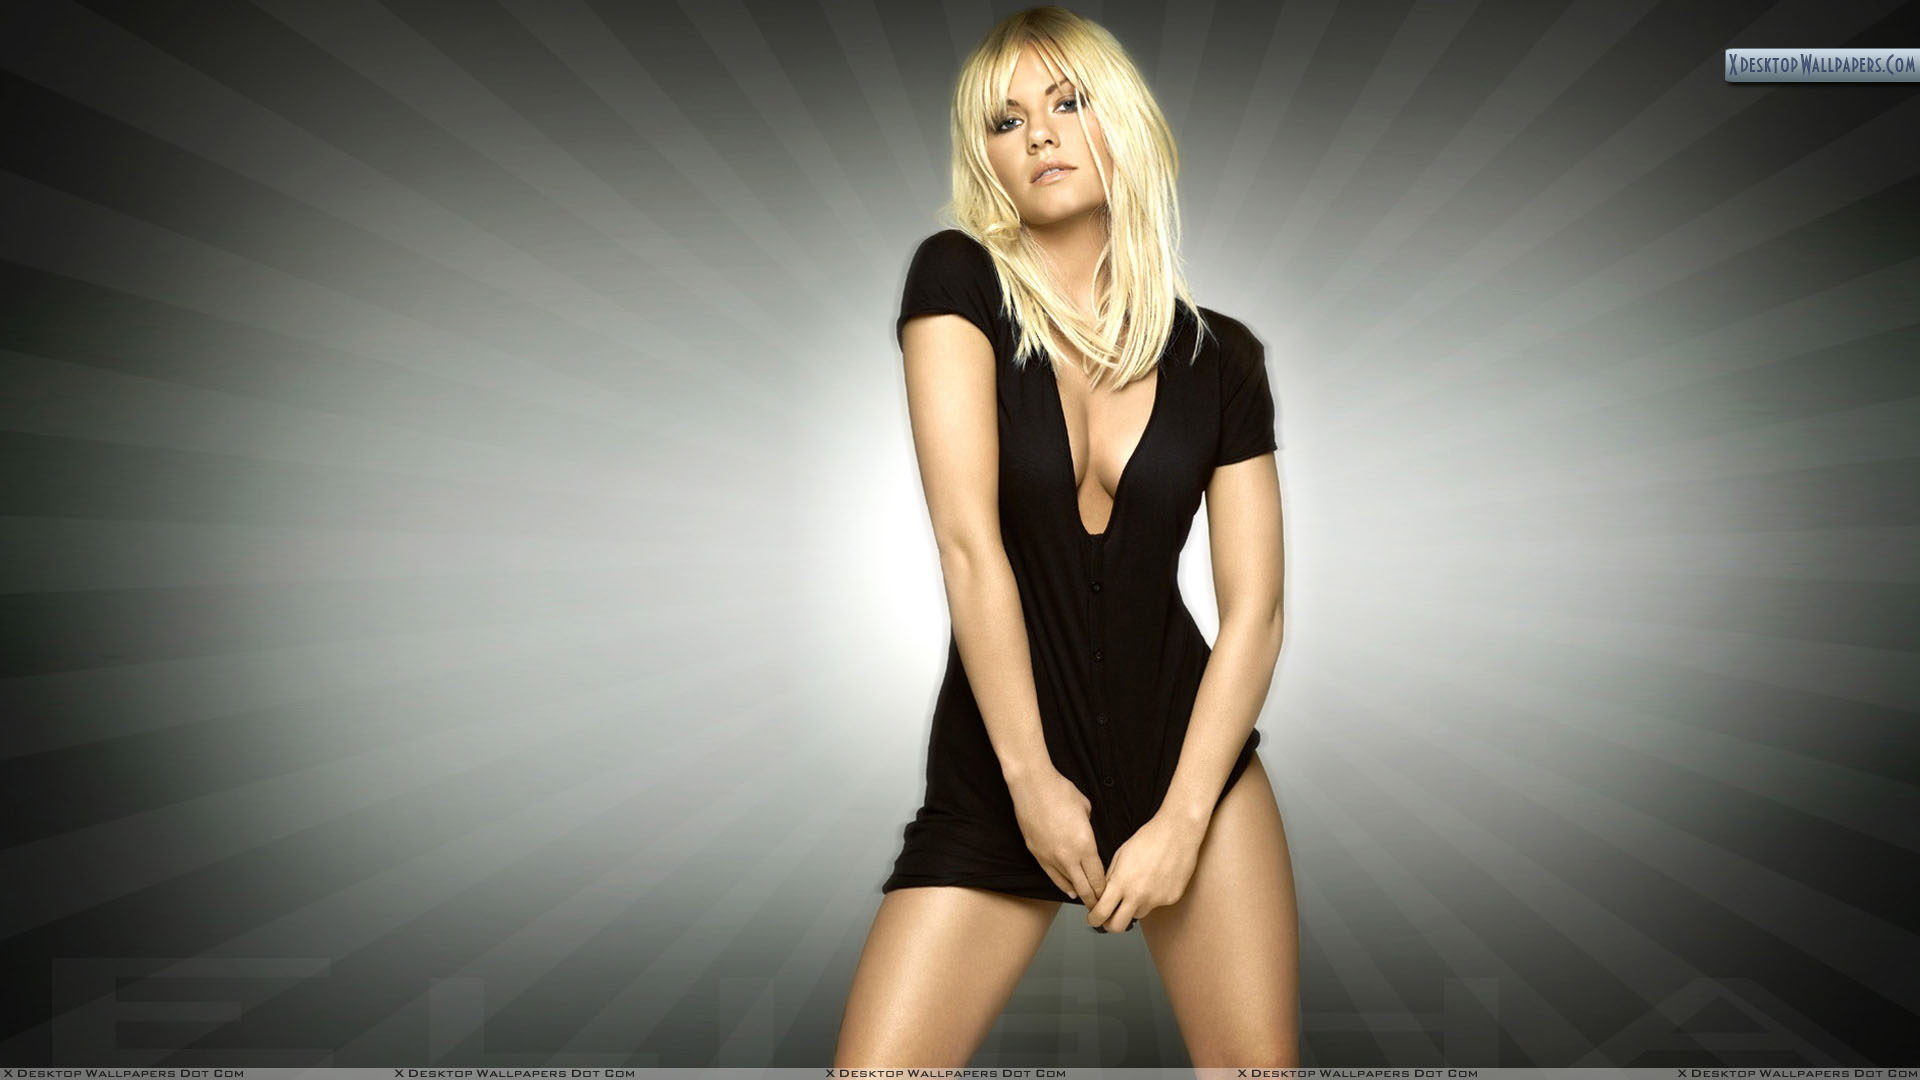 Front Pose Of Elisha Cuthbert In Black Dress Wallpaper